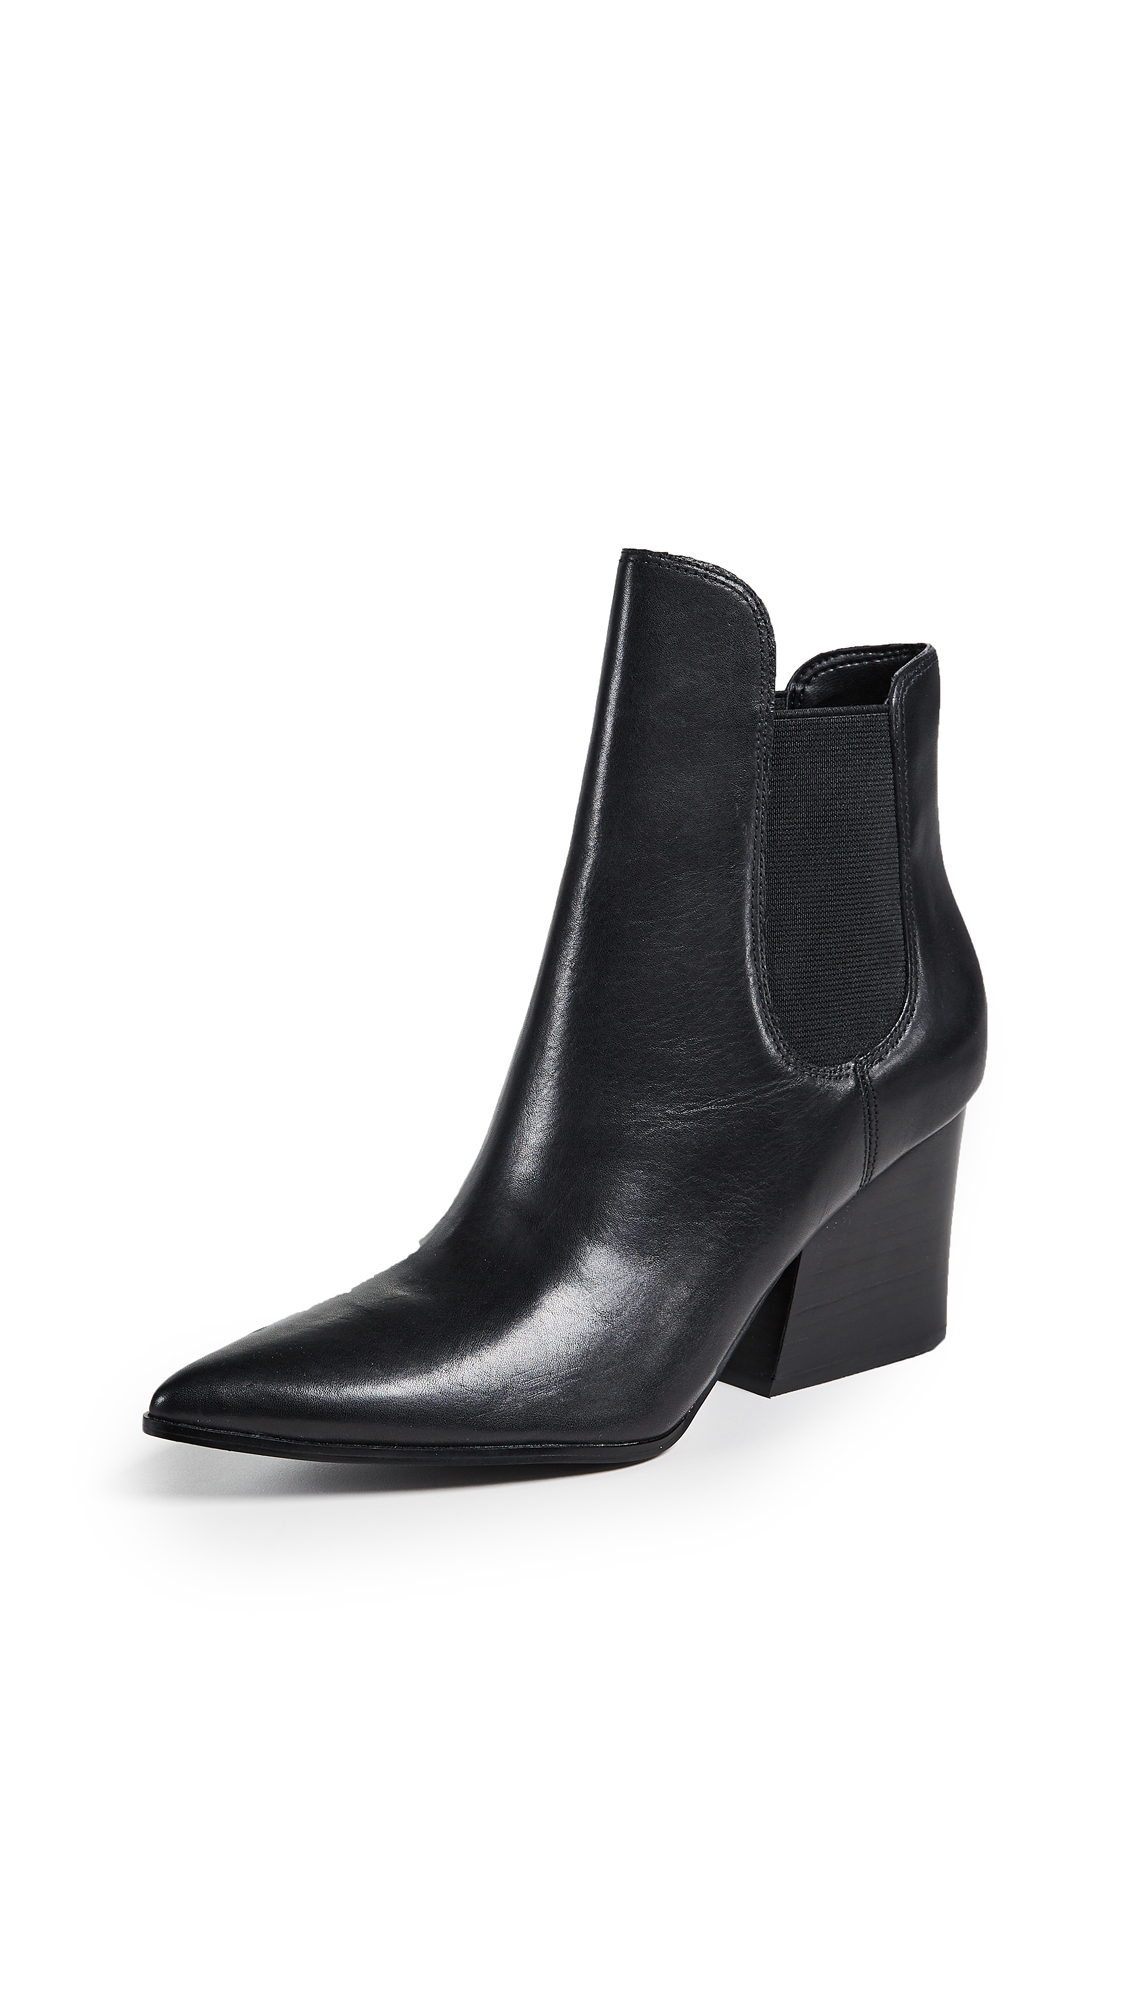 KENDALL + KYLIE Finley Leather Booties - Black